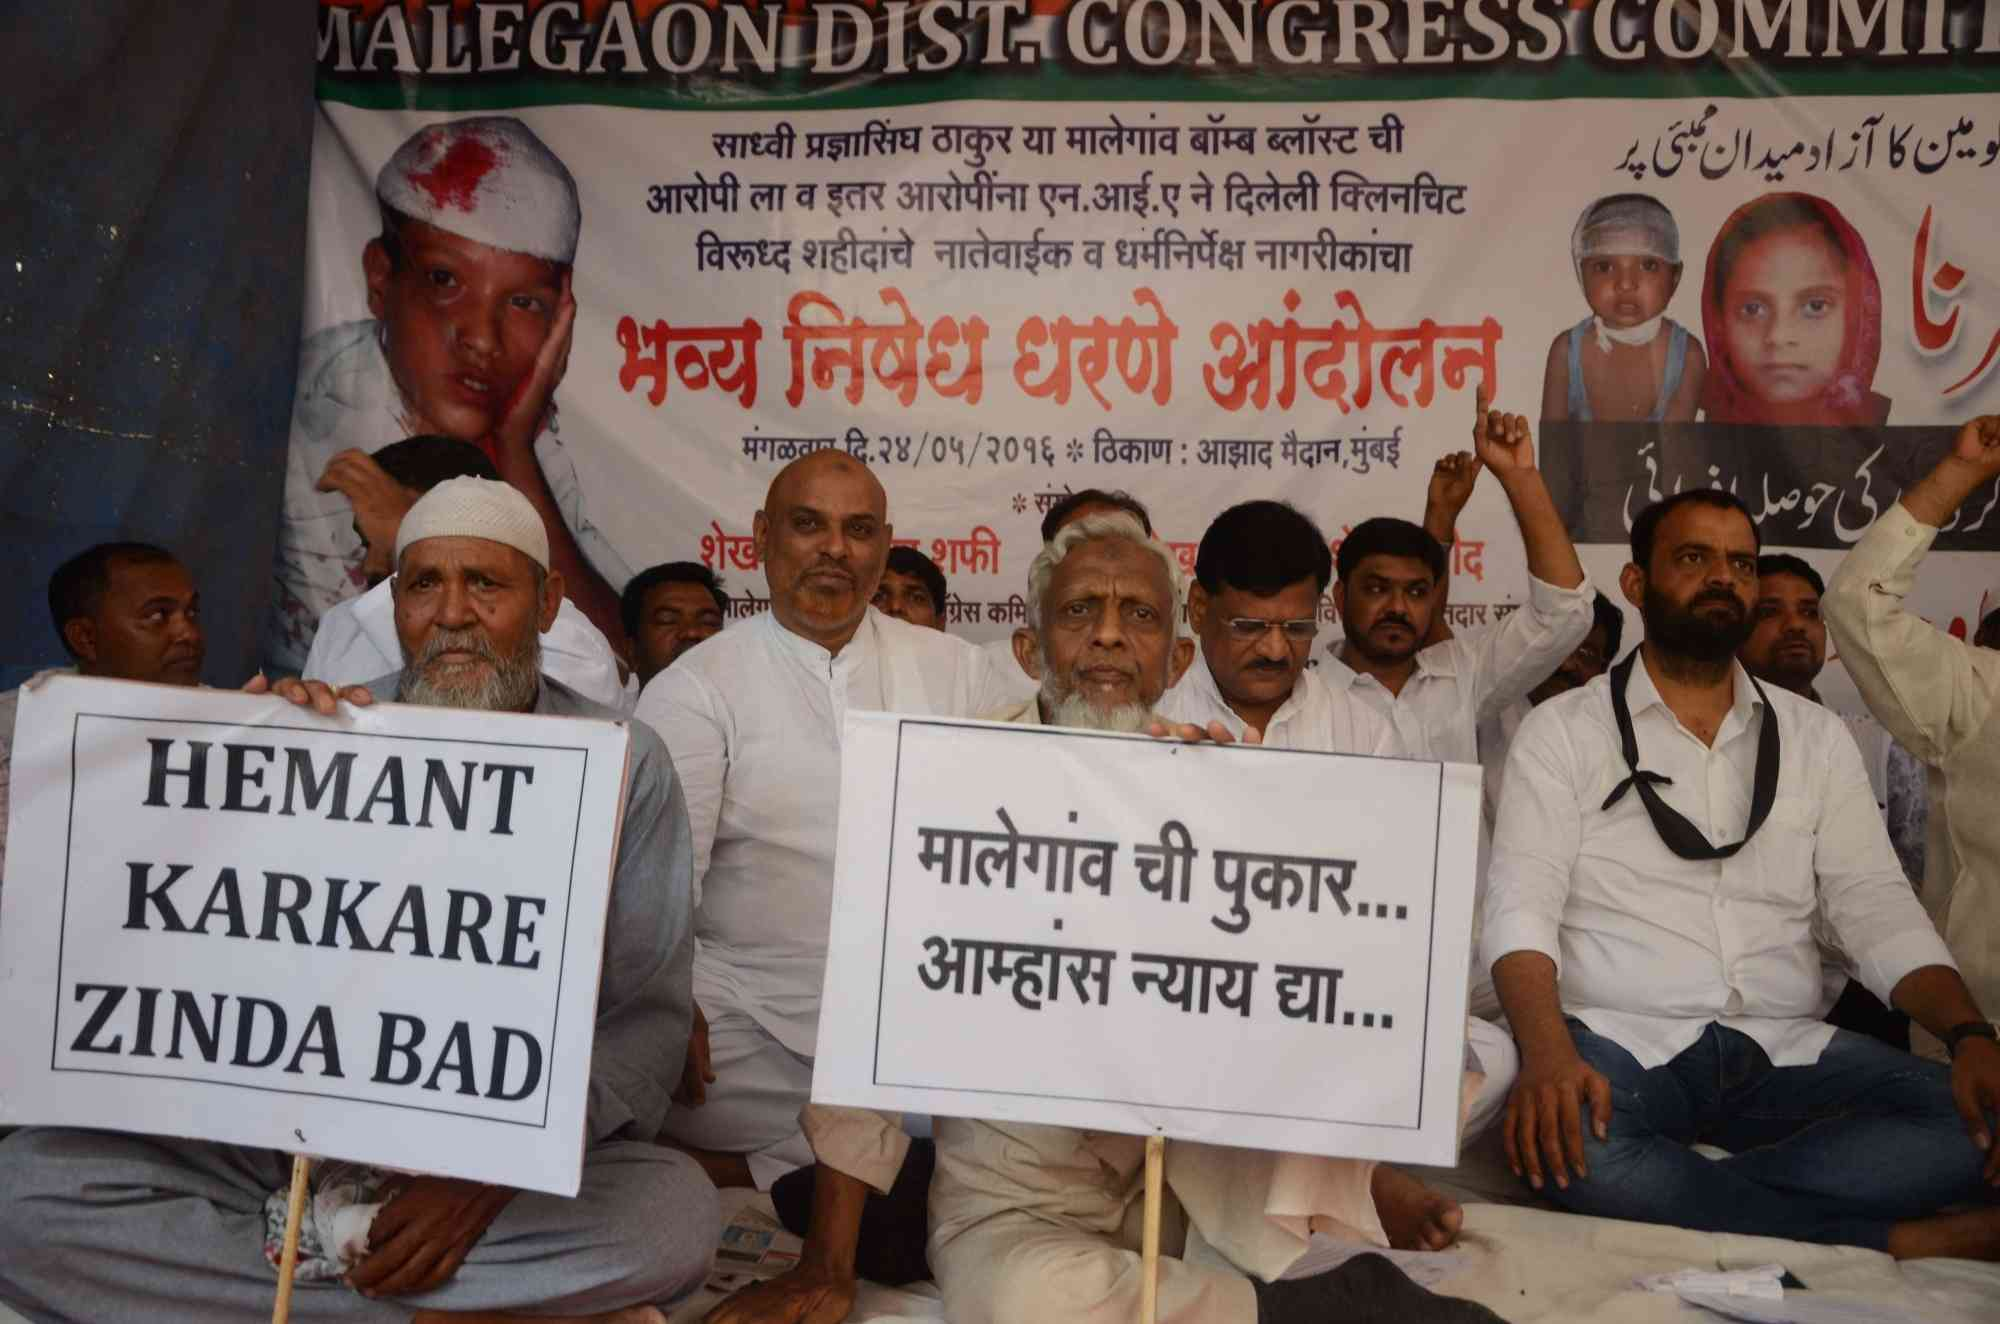 The Congress district committee in Malegaon, Maharashtra, organised a demonstration on Friday in protest against BJP leader and blast accused Pragya Singh Thakur's comments about Mumbai police officer Hemant Karkare. Credit: IANS